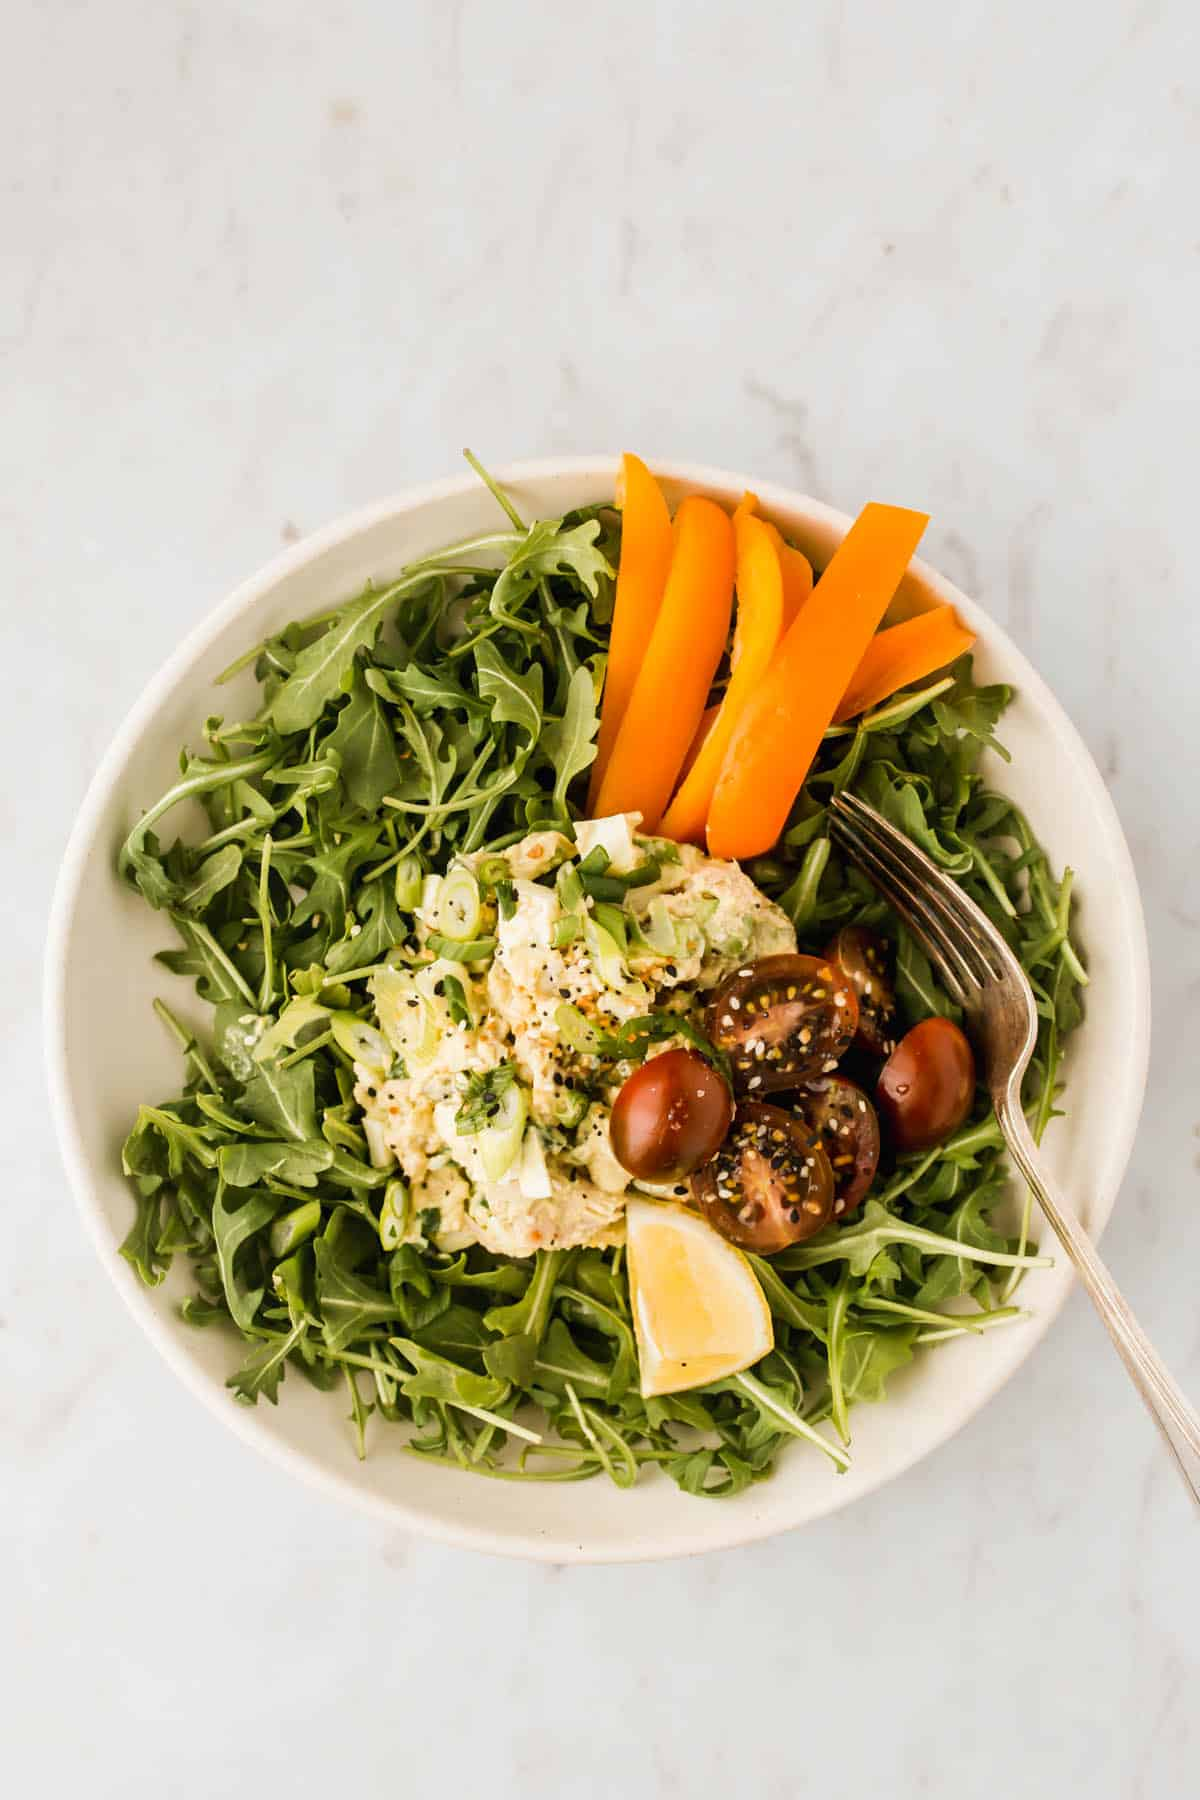 Easy Tuna Egg Salad served with fresh greens and veggies